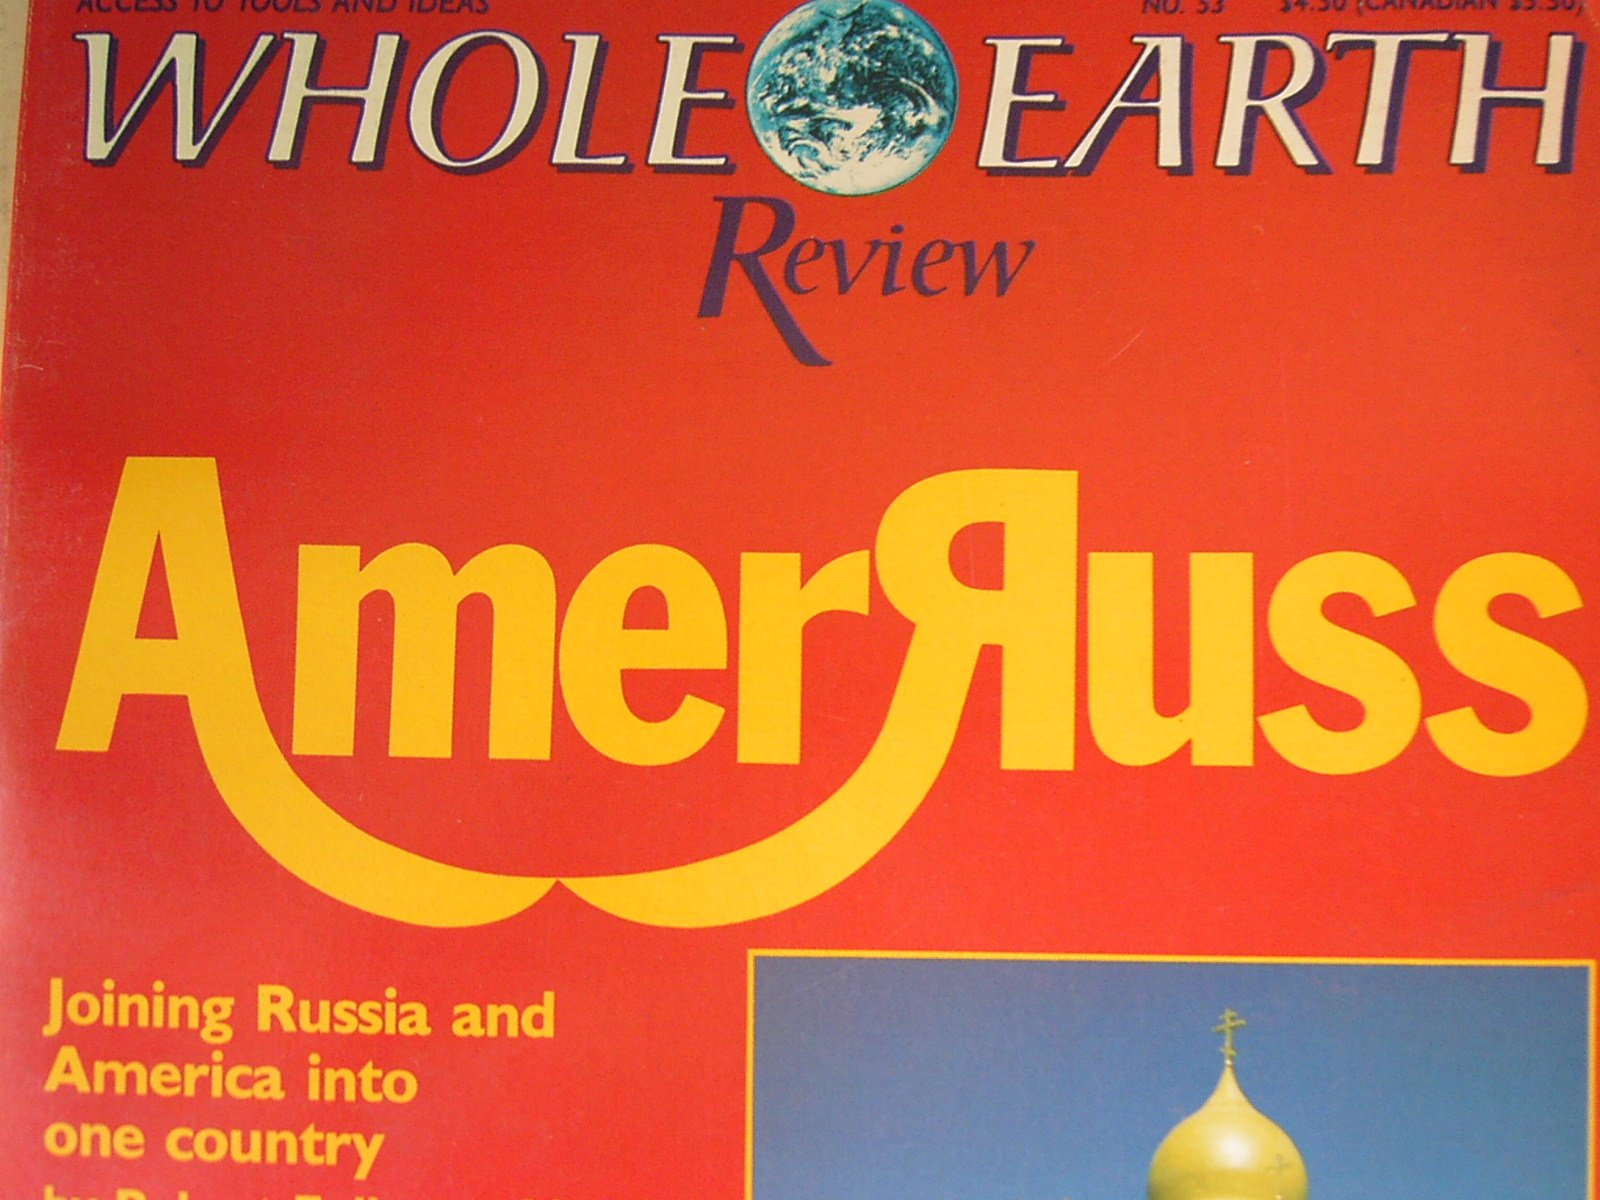 Whole Earth Review--Access to Tools and Ideas No. 53 Winter 1986/87, William Irwin Thompson; Robert Fuller; Various Contributors